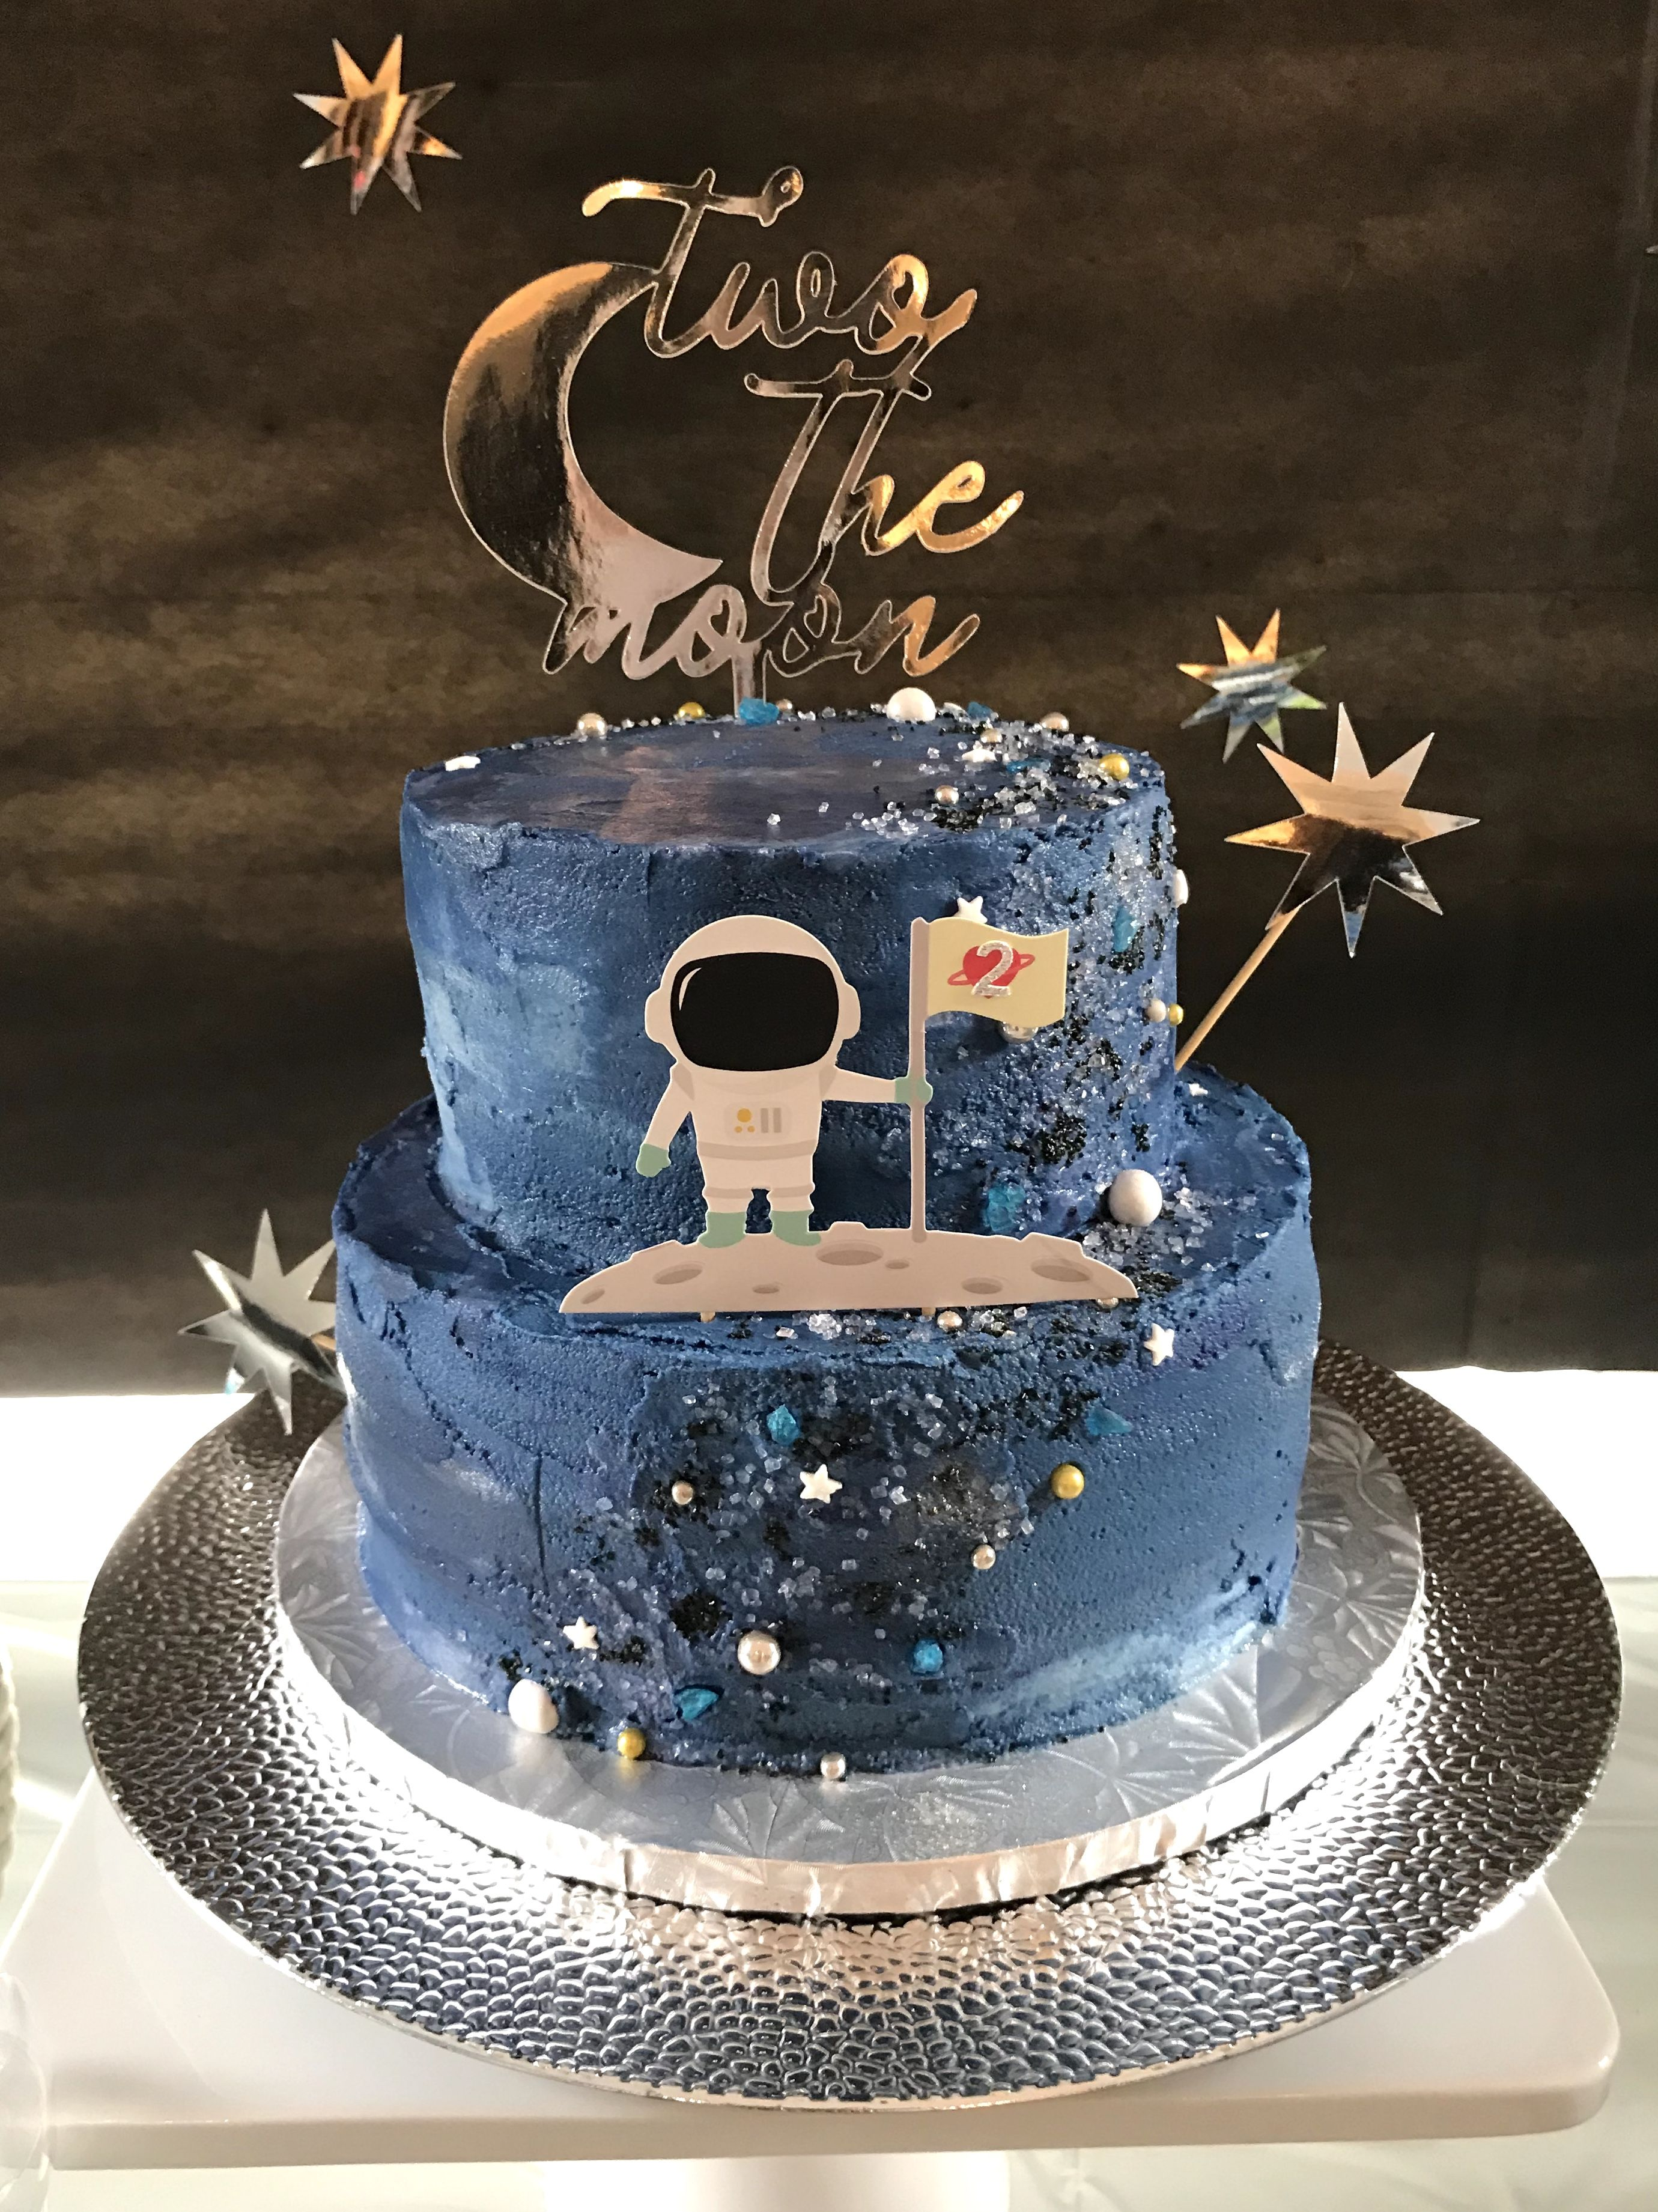 Miraculous Two The Moon Birthday Party Space Galaxy Cake With Cake Toppers Personalised Birthday Cards Paralily Jamesorg